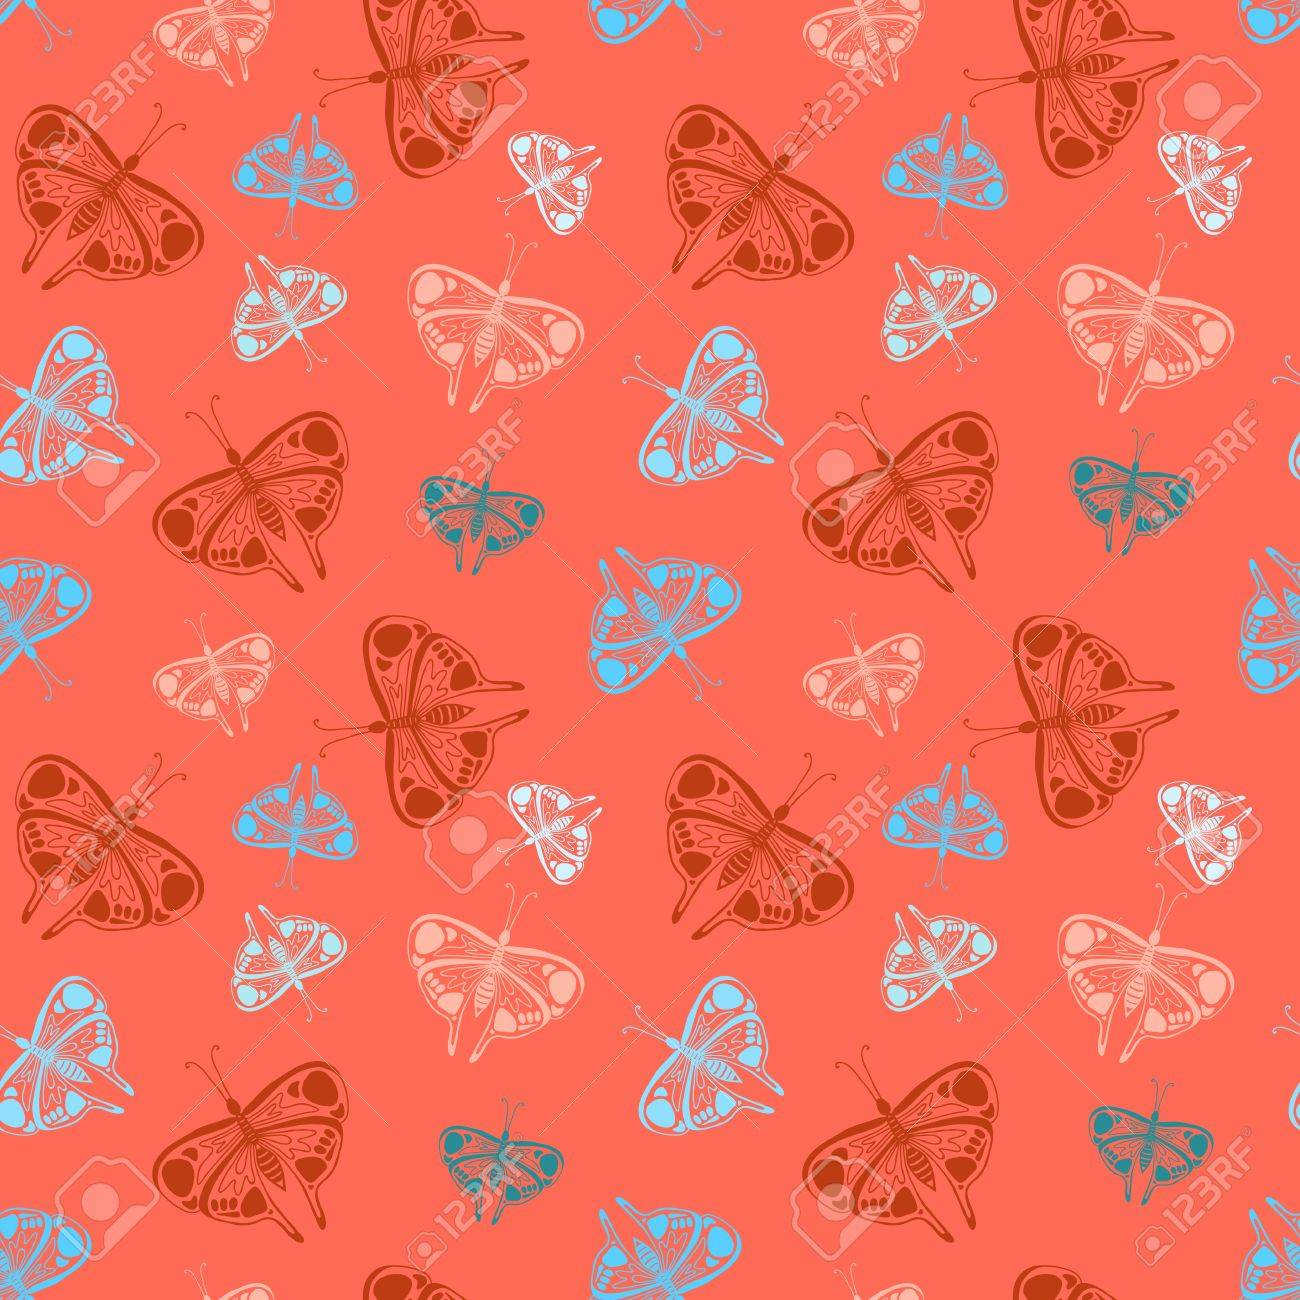 Background For Children Room Decor Holiday Wrap Seamless Pattern With Colorful Butterflies Of Random Size On Red Texture Web Print